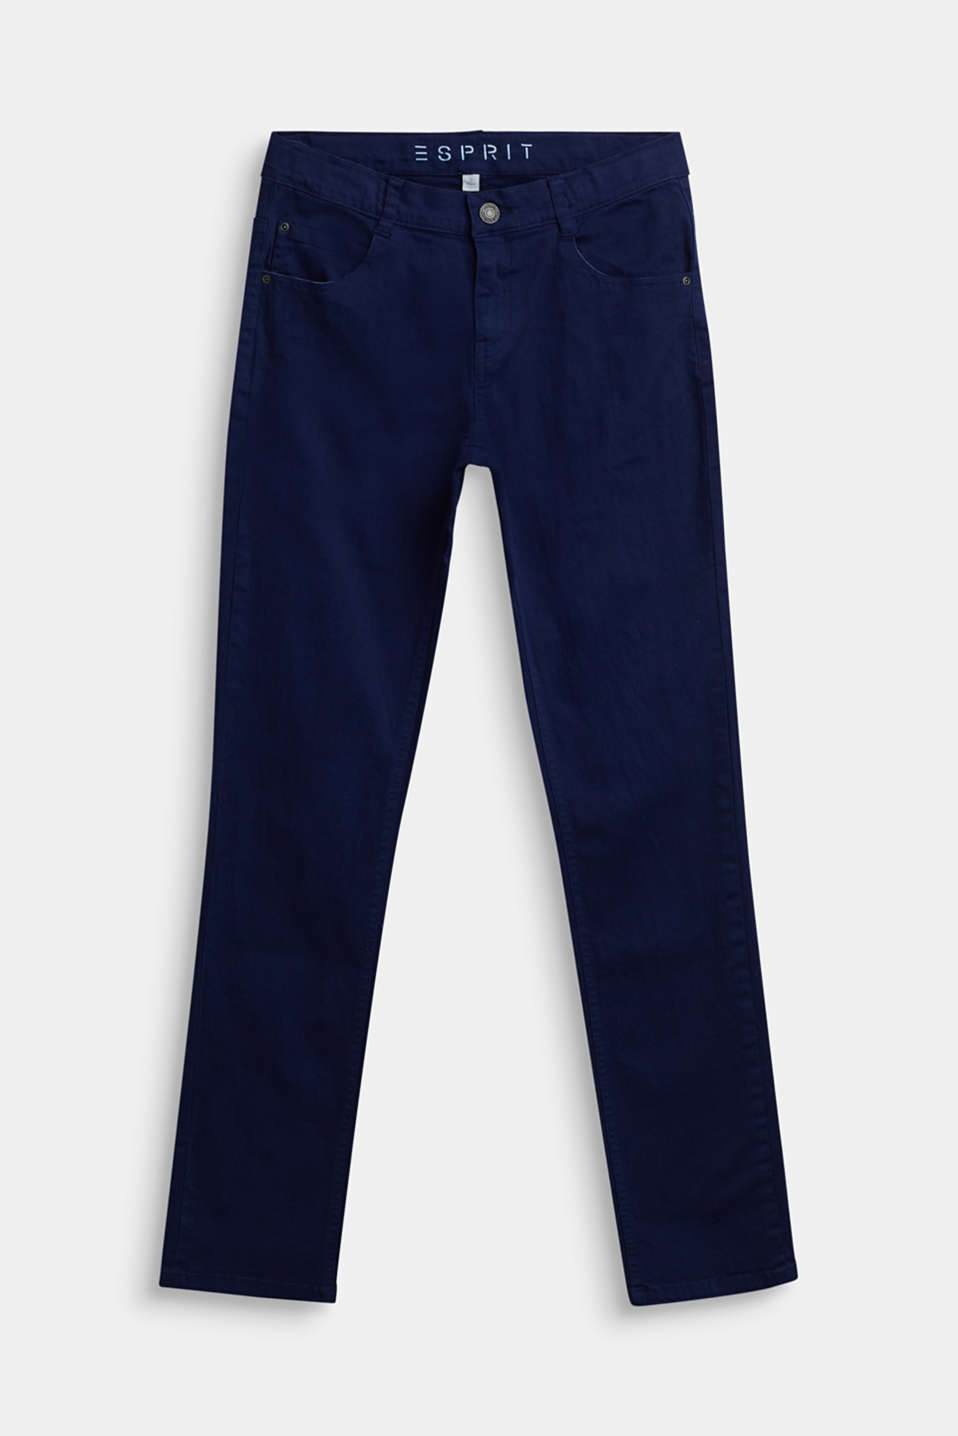 Esprit - Colored Stretch-Jeans, Verstellbund